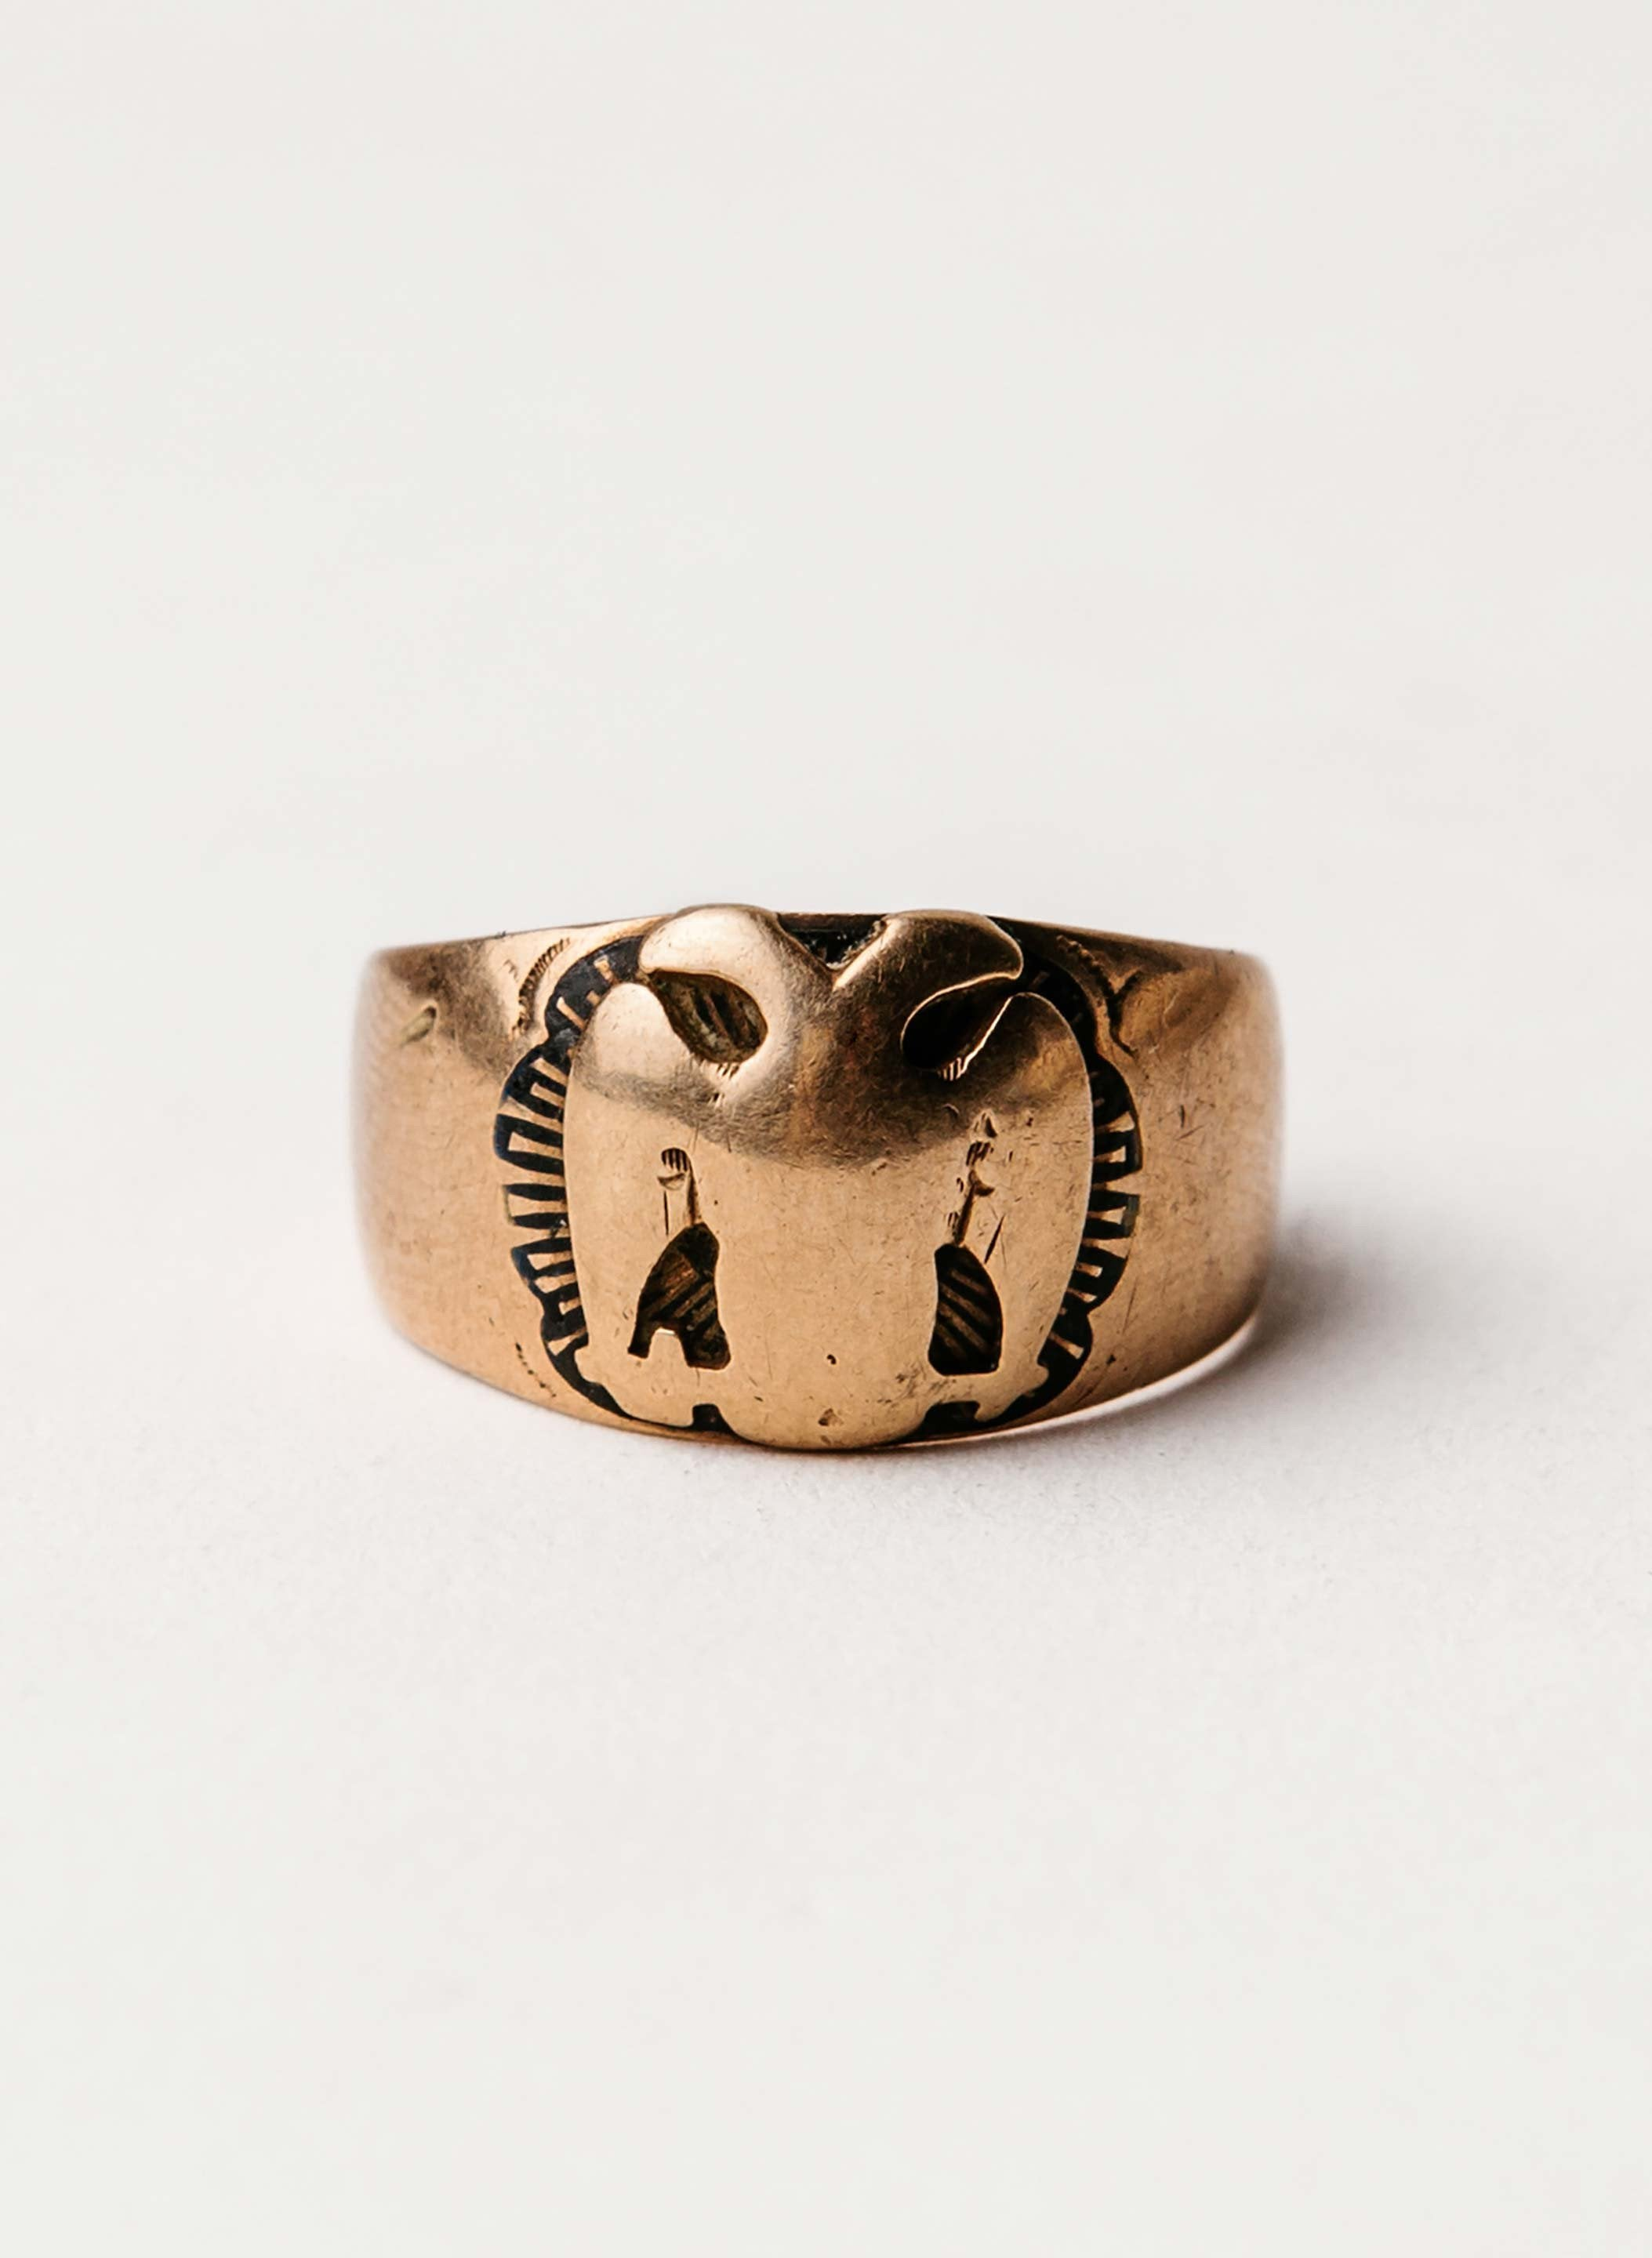 imogene + willie - vintage 10k gold  freemason ring